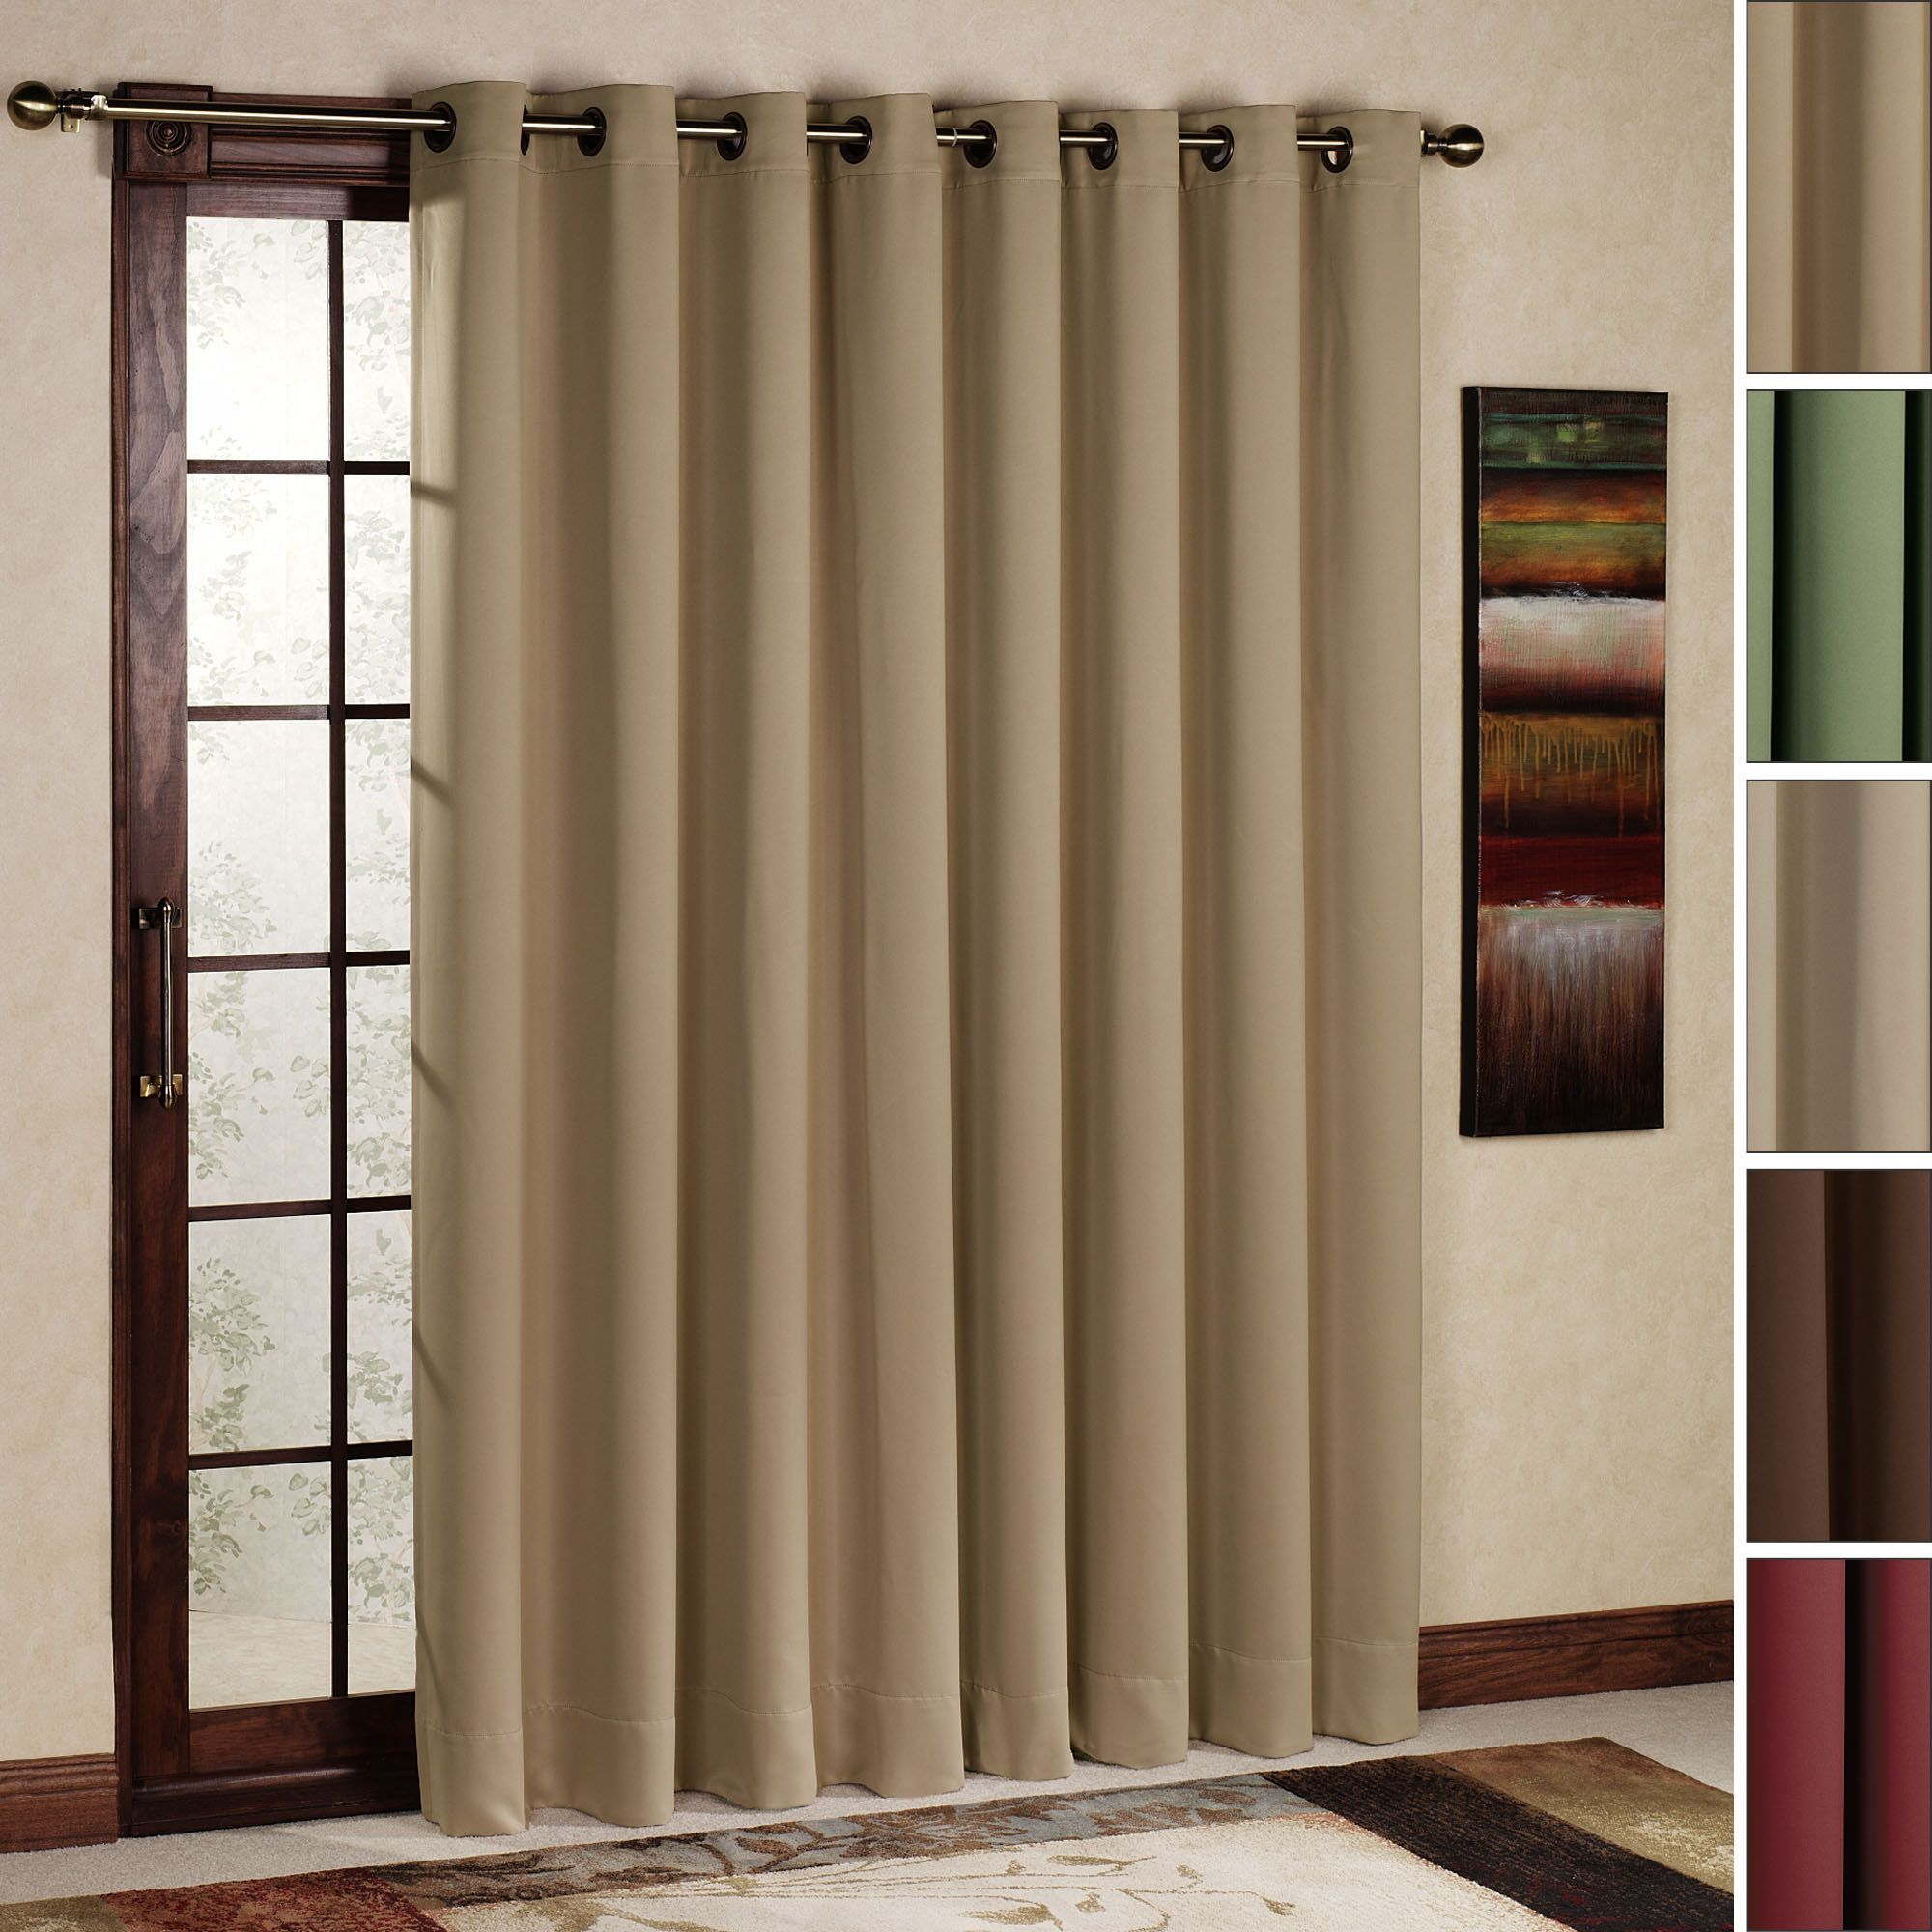 image panels linen ideas charter home curtain blackout aligning of corners curtains the